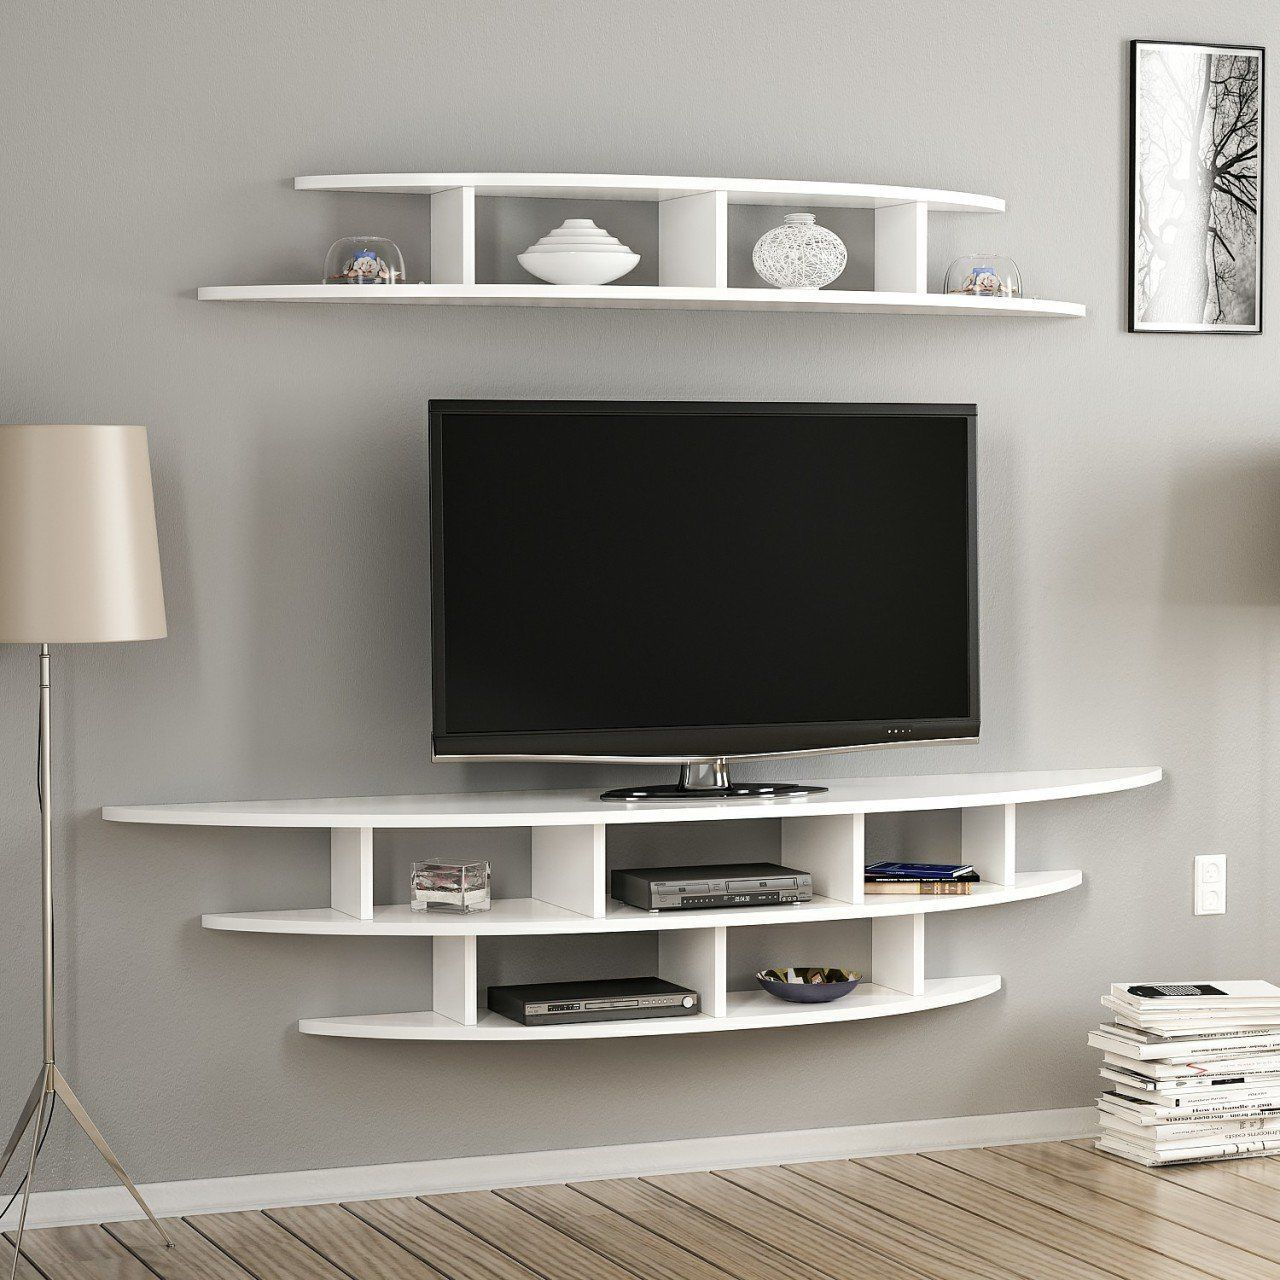 White Wall Mounted Tv Unit White Television Stand Wall Mounted Wooden Tv Unit White Tv Hol In 2021 Living Room Tv Unit Designs Wall Mounted Tv Unit Living Room Tv Wall